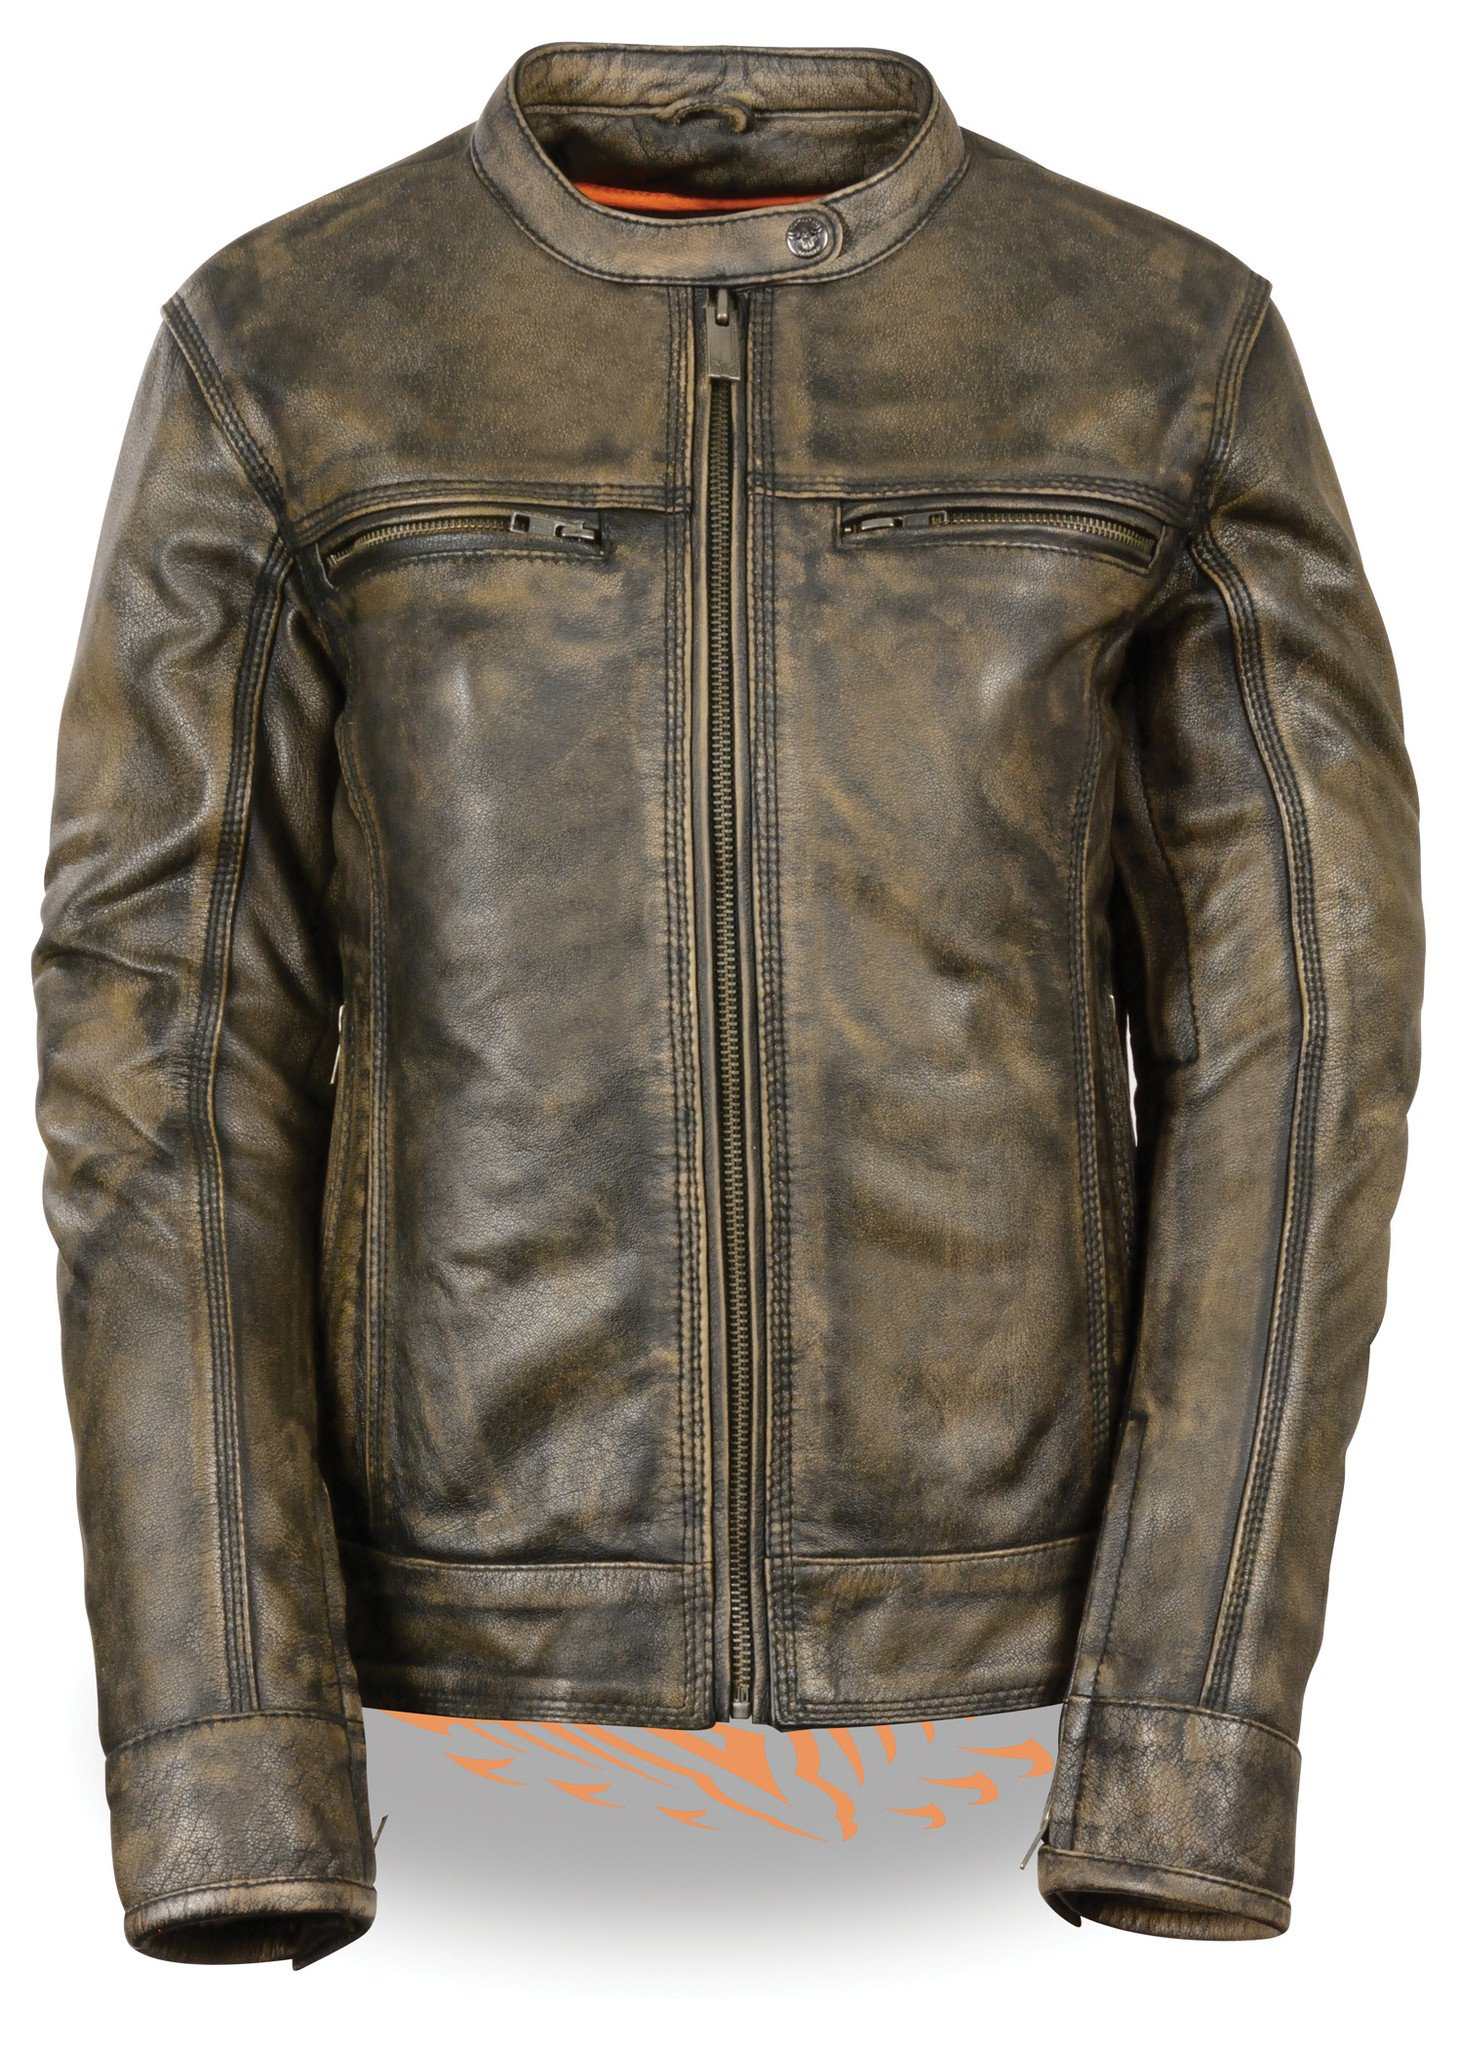 Women's distressed brown leather jacket butter soft